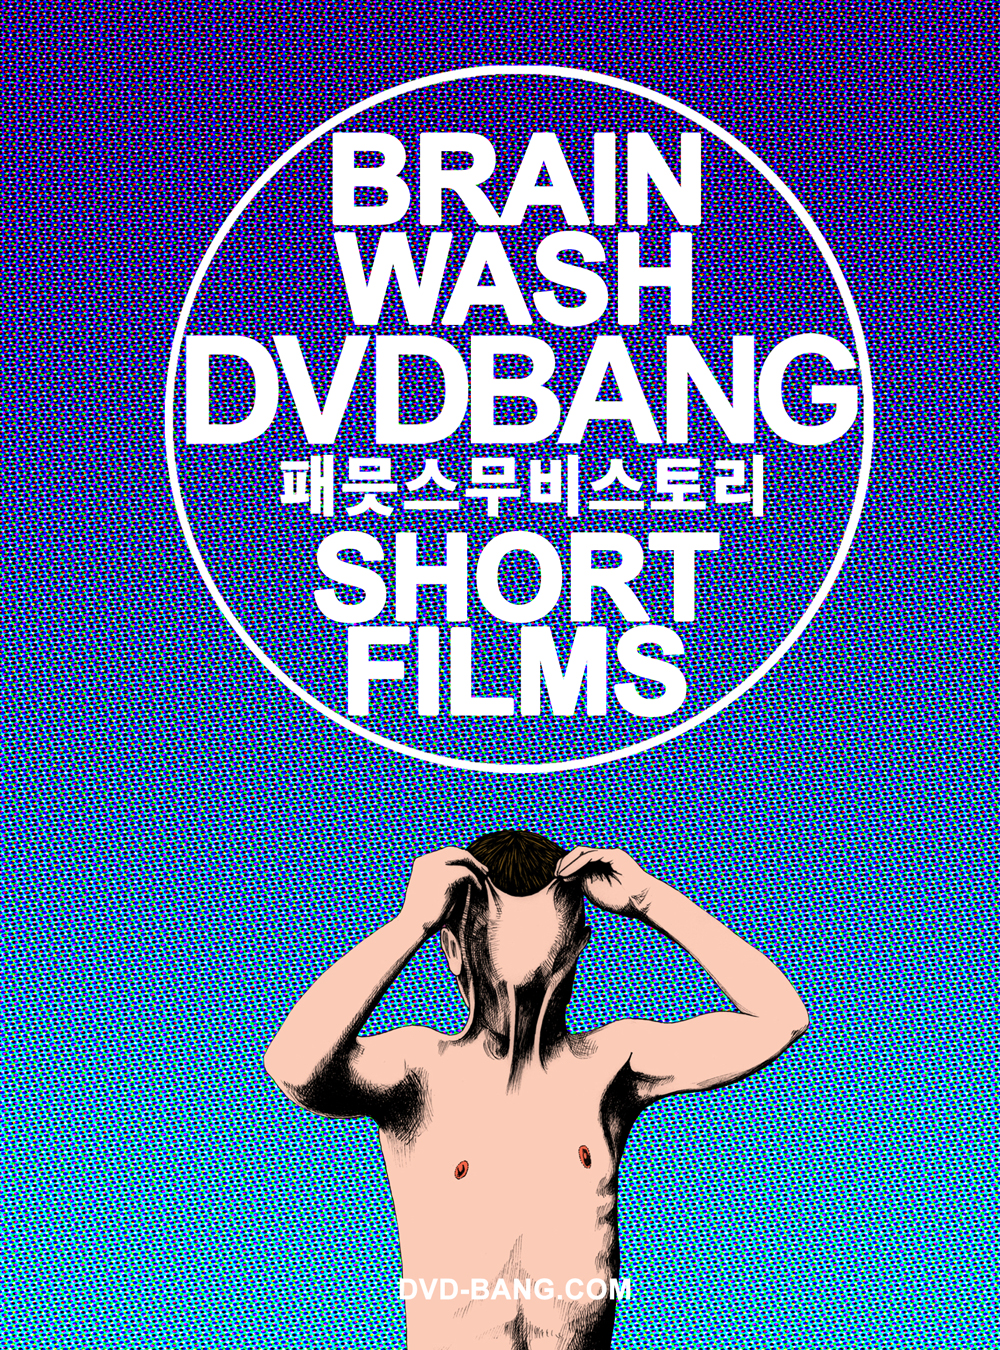 BRAIN WASH | DVDBANG: FUTURES